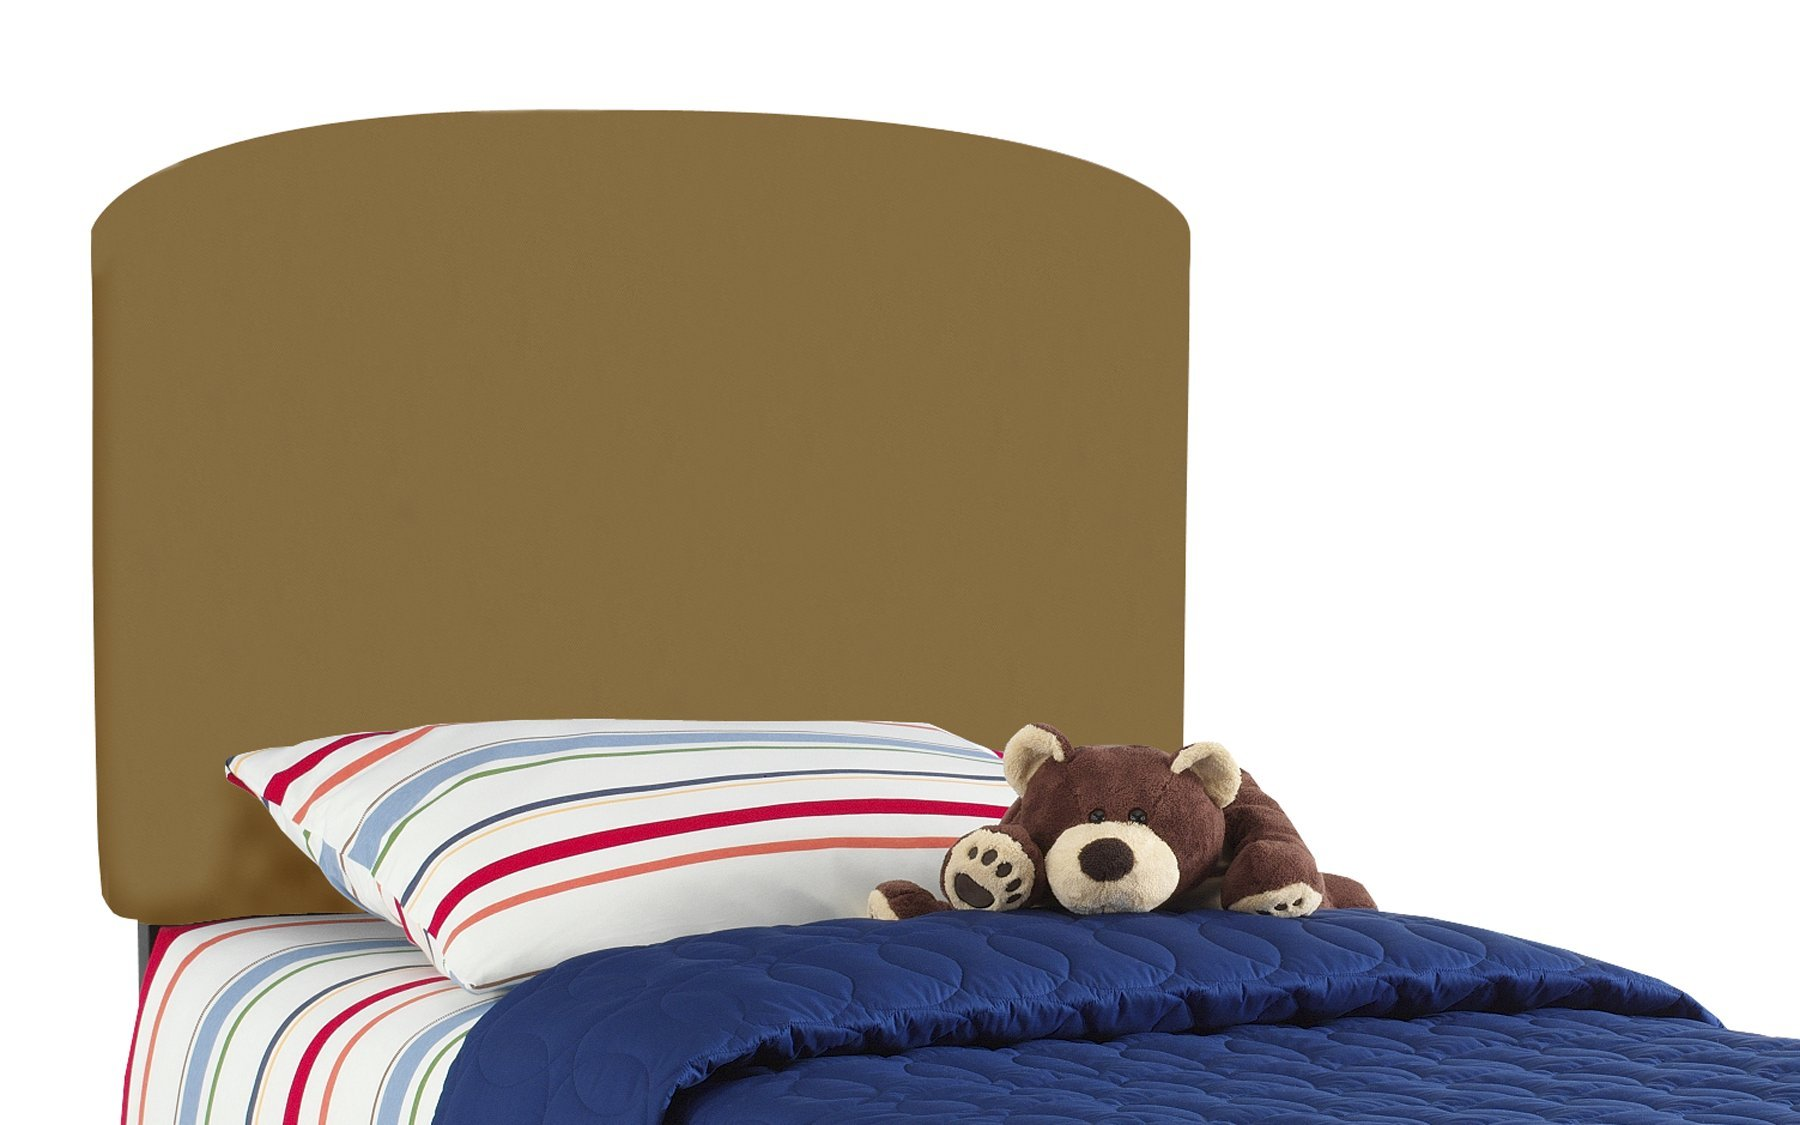 Skyline Furniture Lauren'S Twin Kids Headboard By In Khaki Brown Cotton